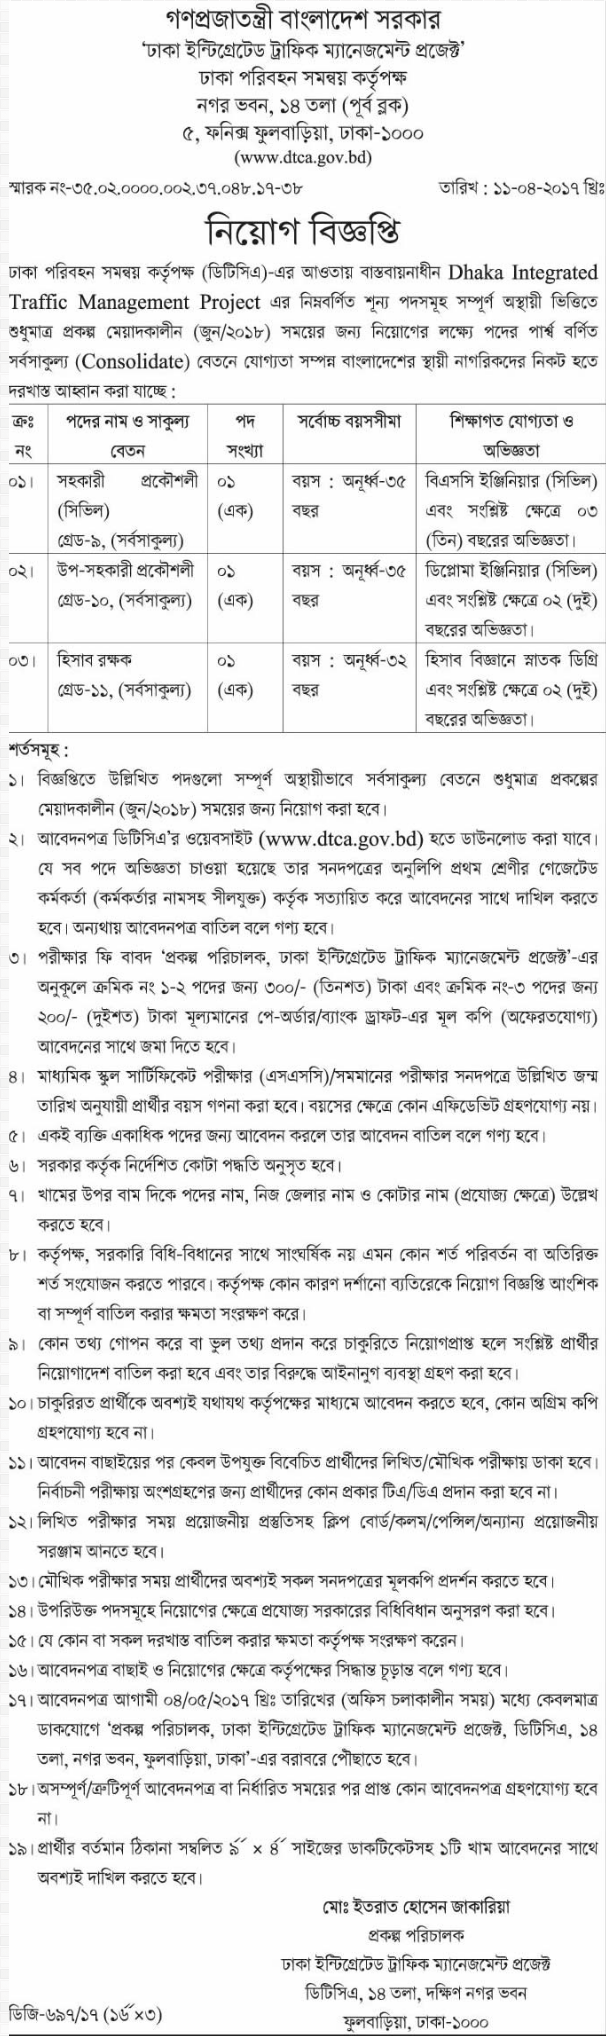 Dhaka Coordination Authority (DTCA) Job Circular 2017